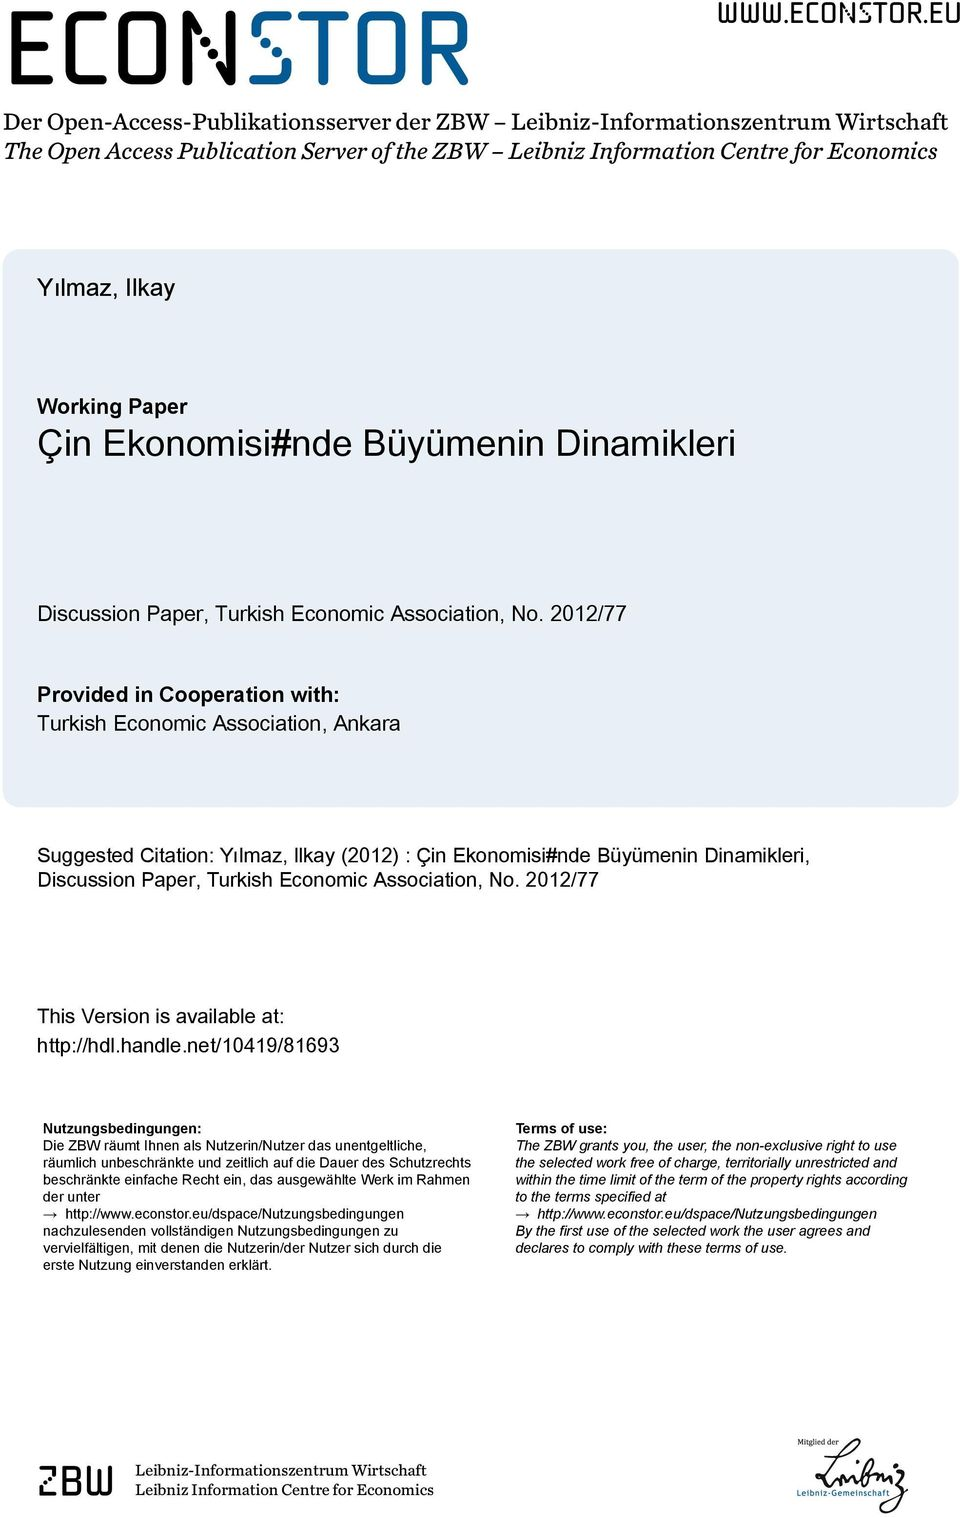 eu Der Open-Access-Publikationsserver der ZBW Leibniz-Informationszentrum Wirtschaft The Open Access Publication Server of the ZBW Leibniz Information Centre for Economics Yılmaz, Ilkay Working Paper